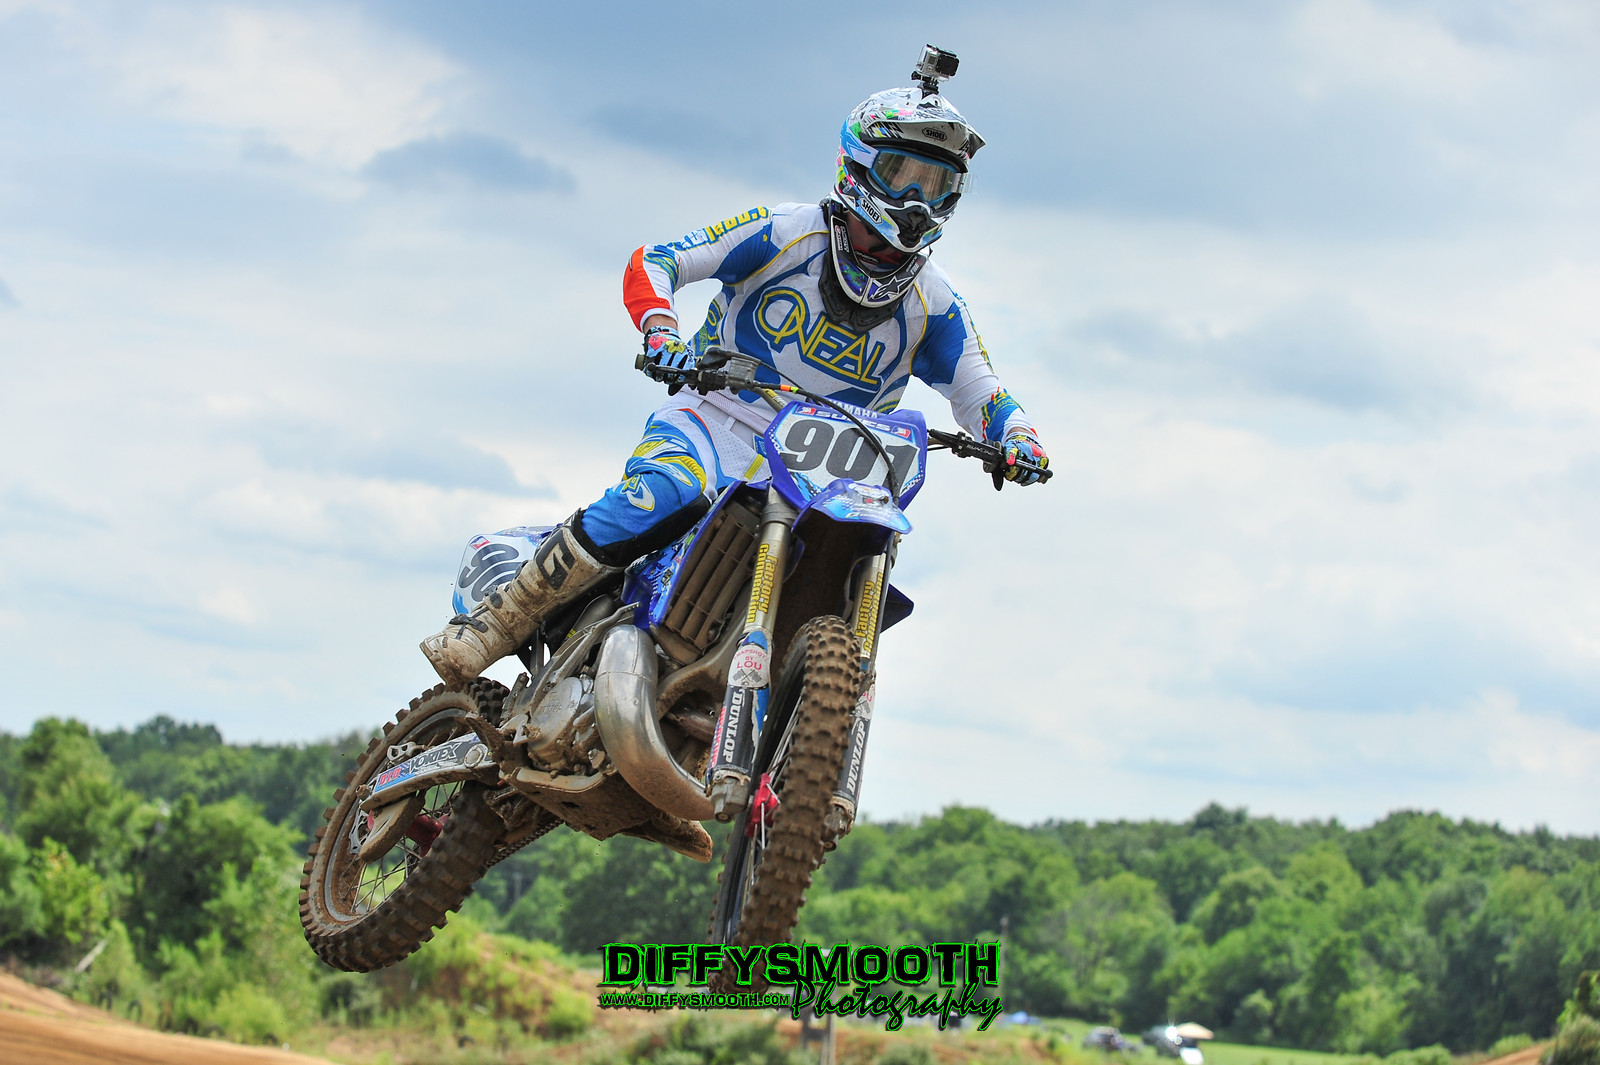 Joey Suges - DiffySmooth - Motocross Pictures - Vital MX